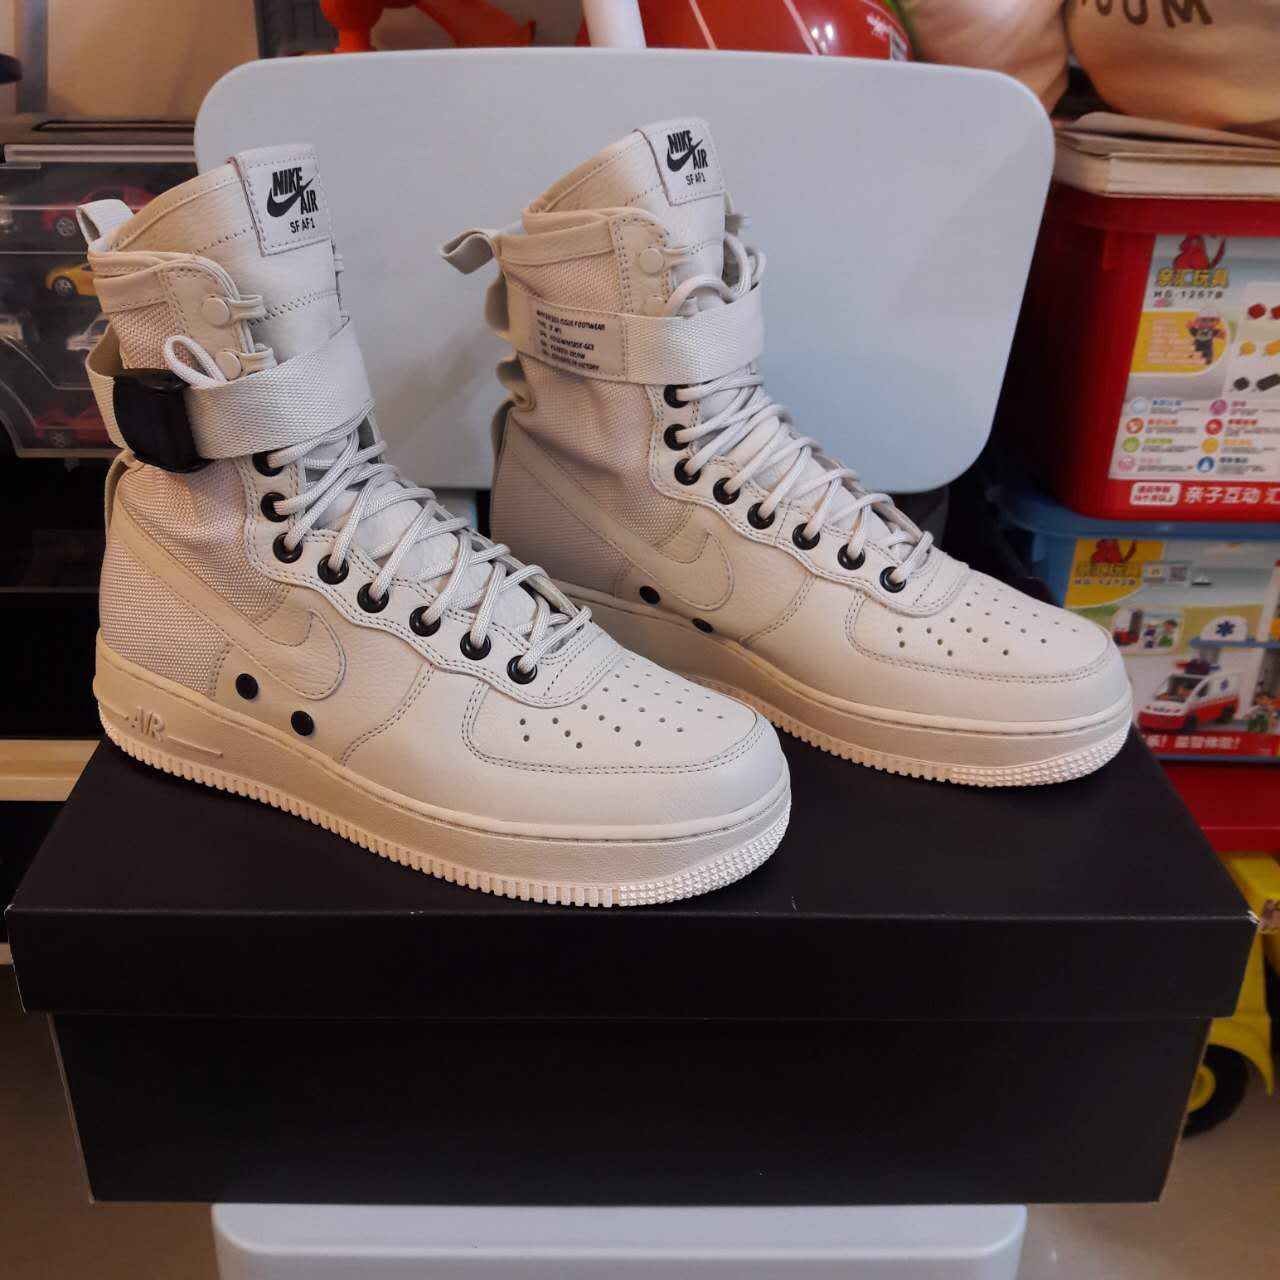 super popular 94ecc 5038b Air Force 1 High, Nike Boots, Nike Air Force Ones, Air Force Sneakers